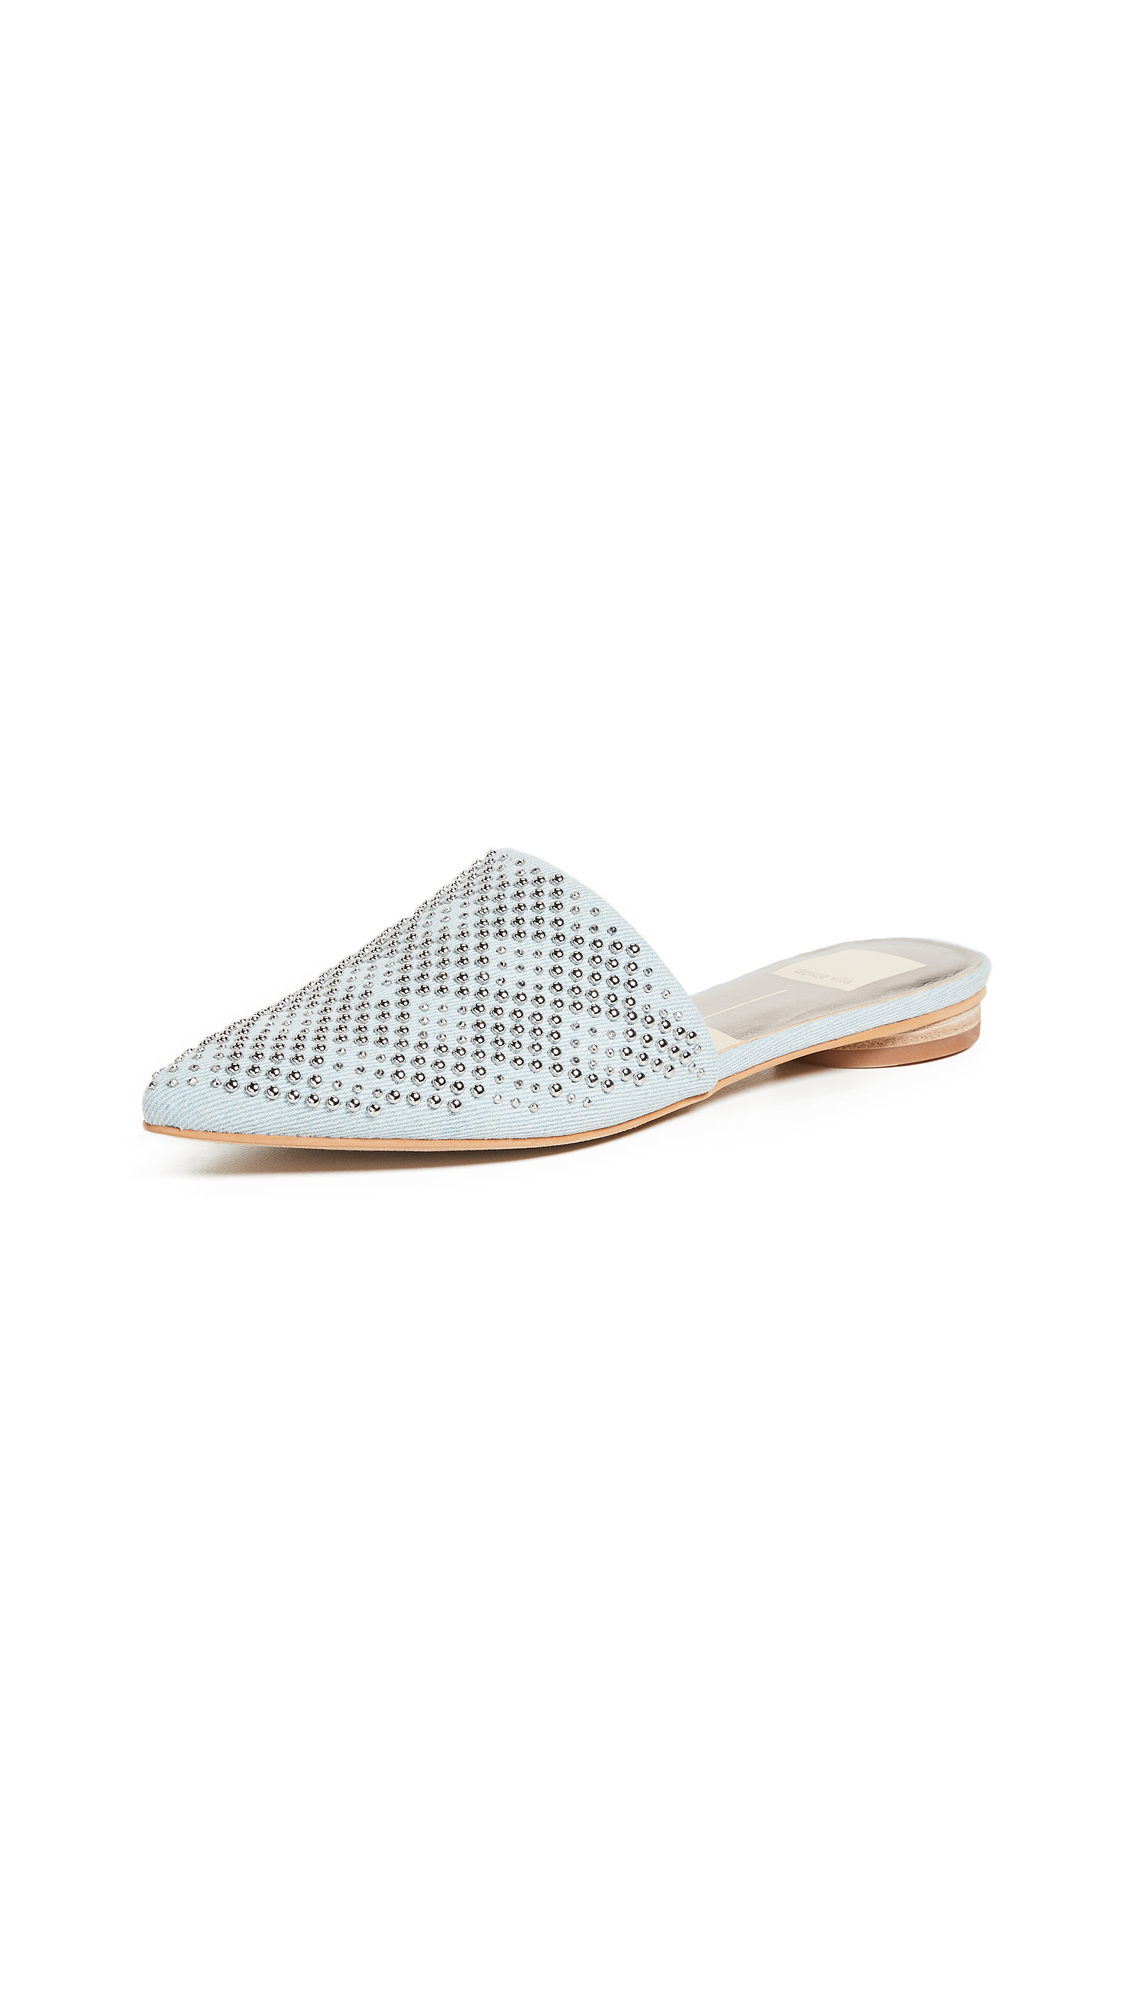 Photo of Dolce Vita Elvah Point Toe Mules - buy Dolce Vita footwear online